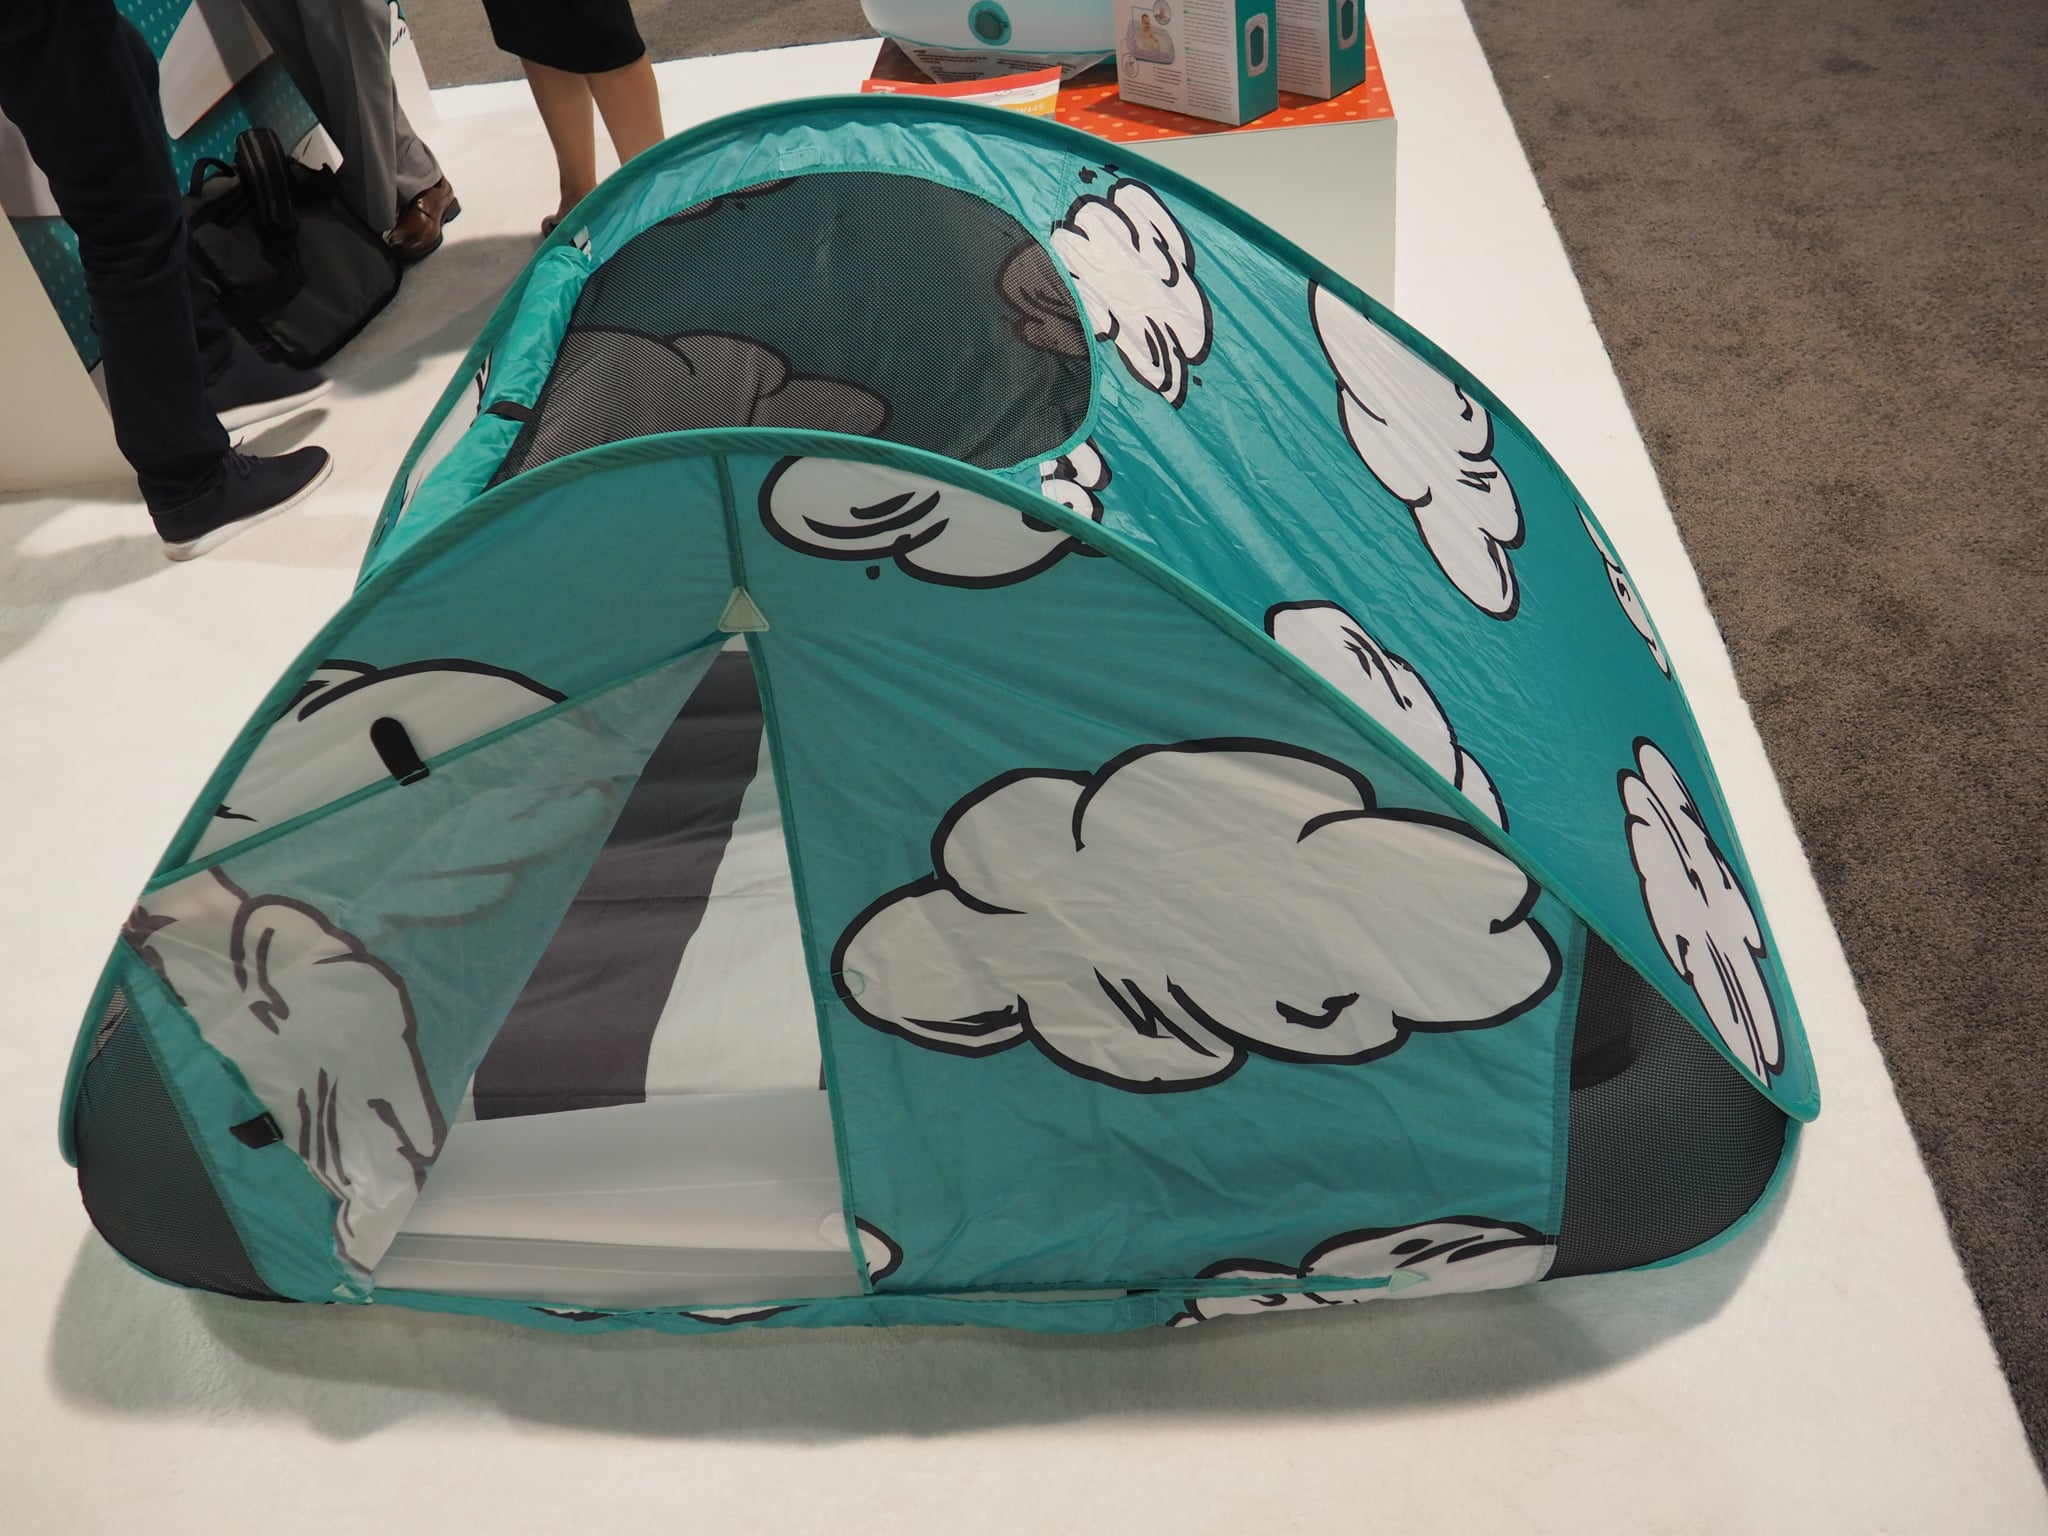 Image of: The Shrunks Bed Tent 170 New Baby And Kid Products You Ll Wish Were Invented Sooner Popsugar Family Photo 96